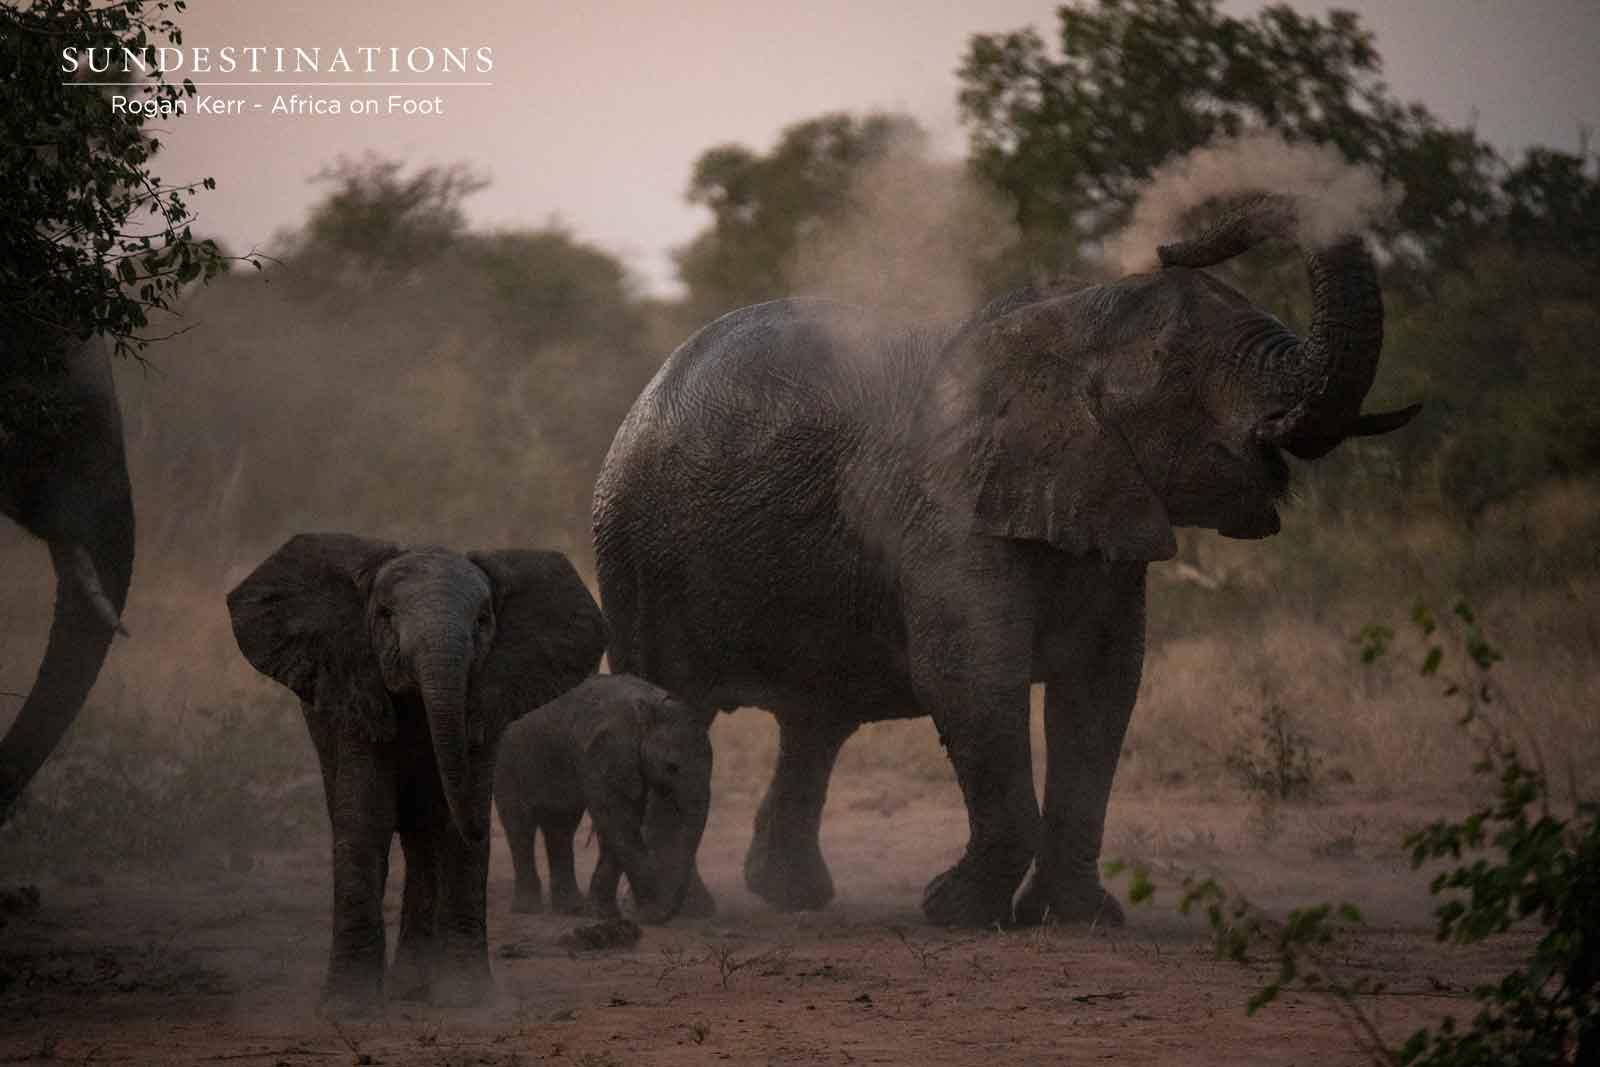 Dust Bath at Africa on Foot